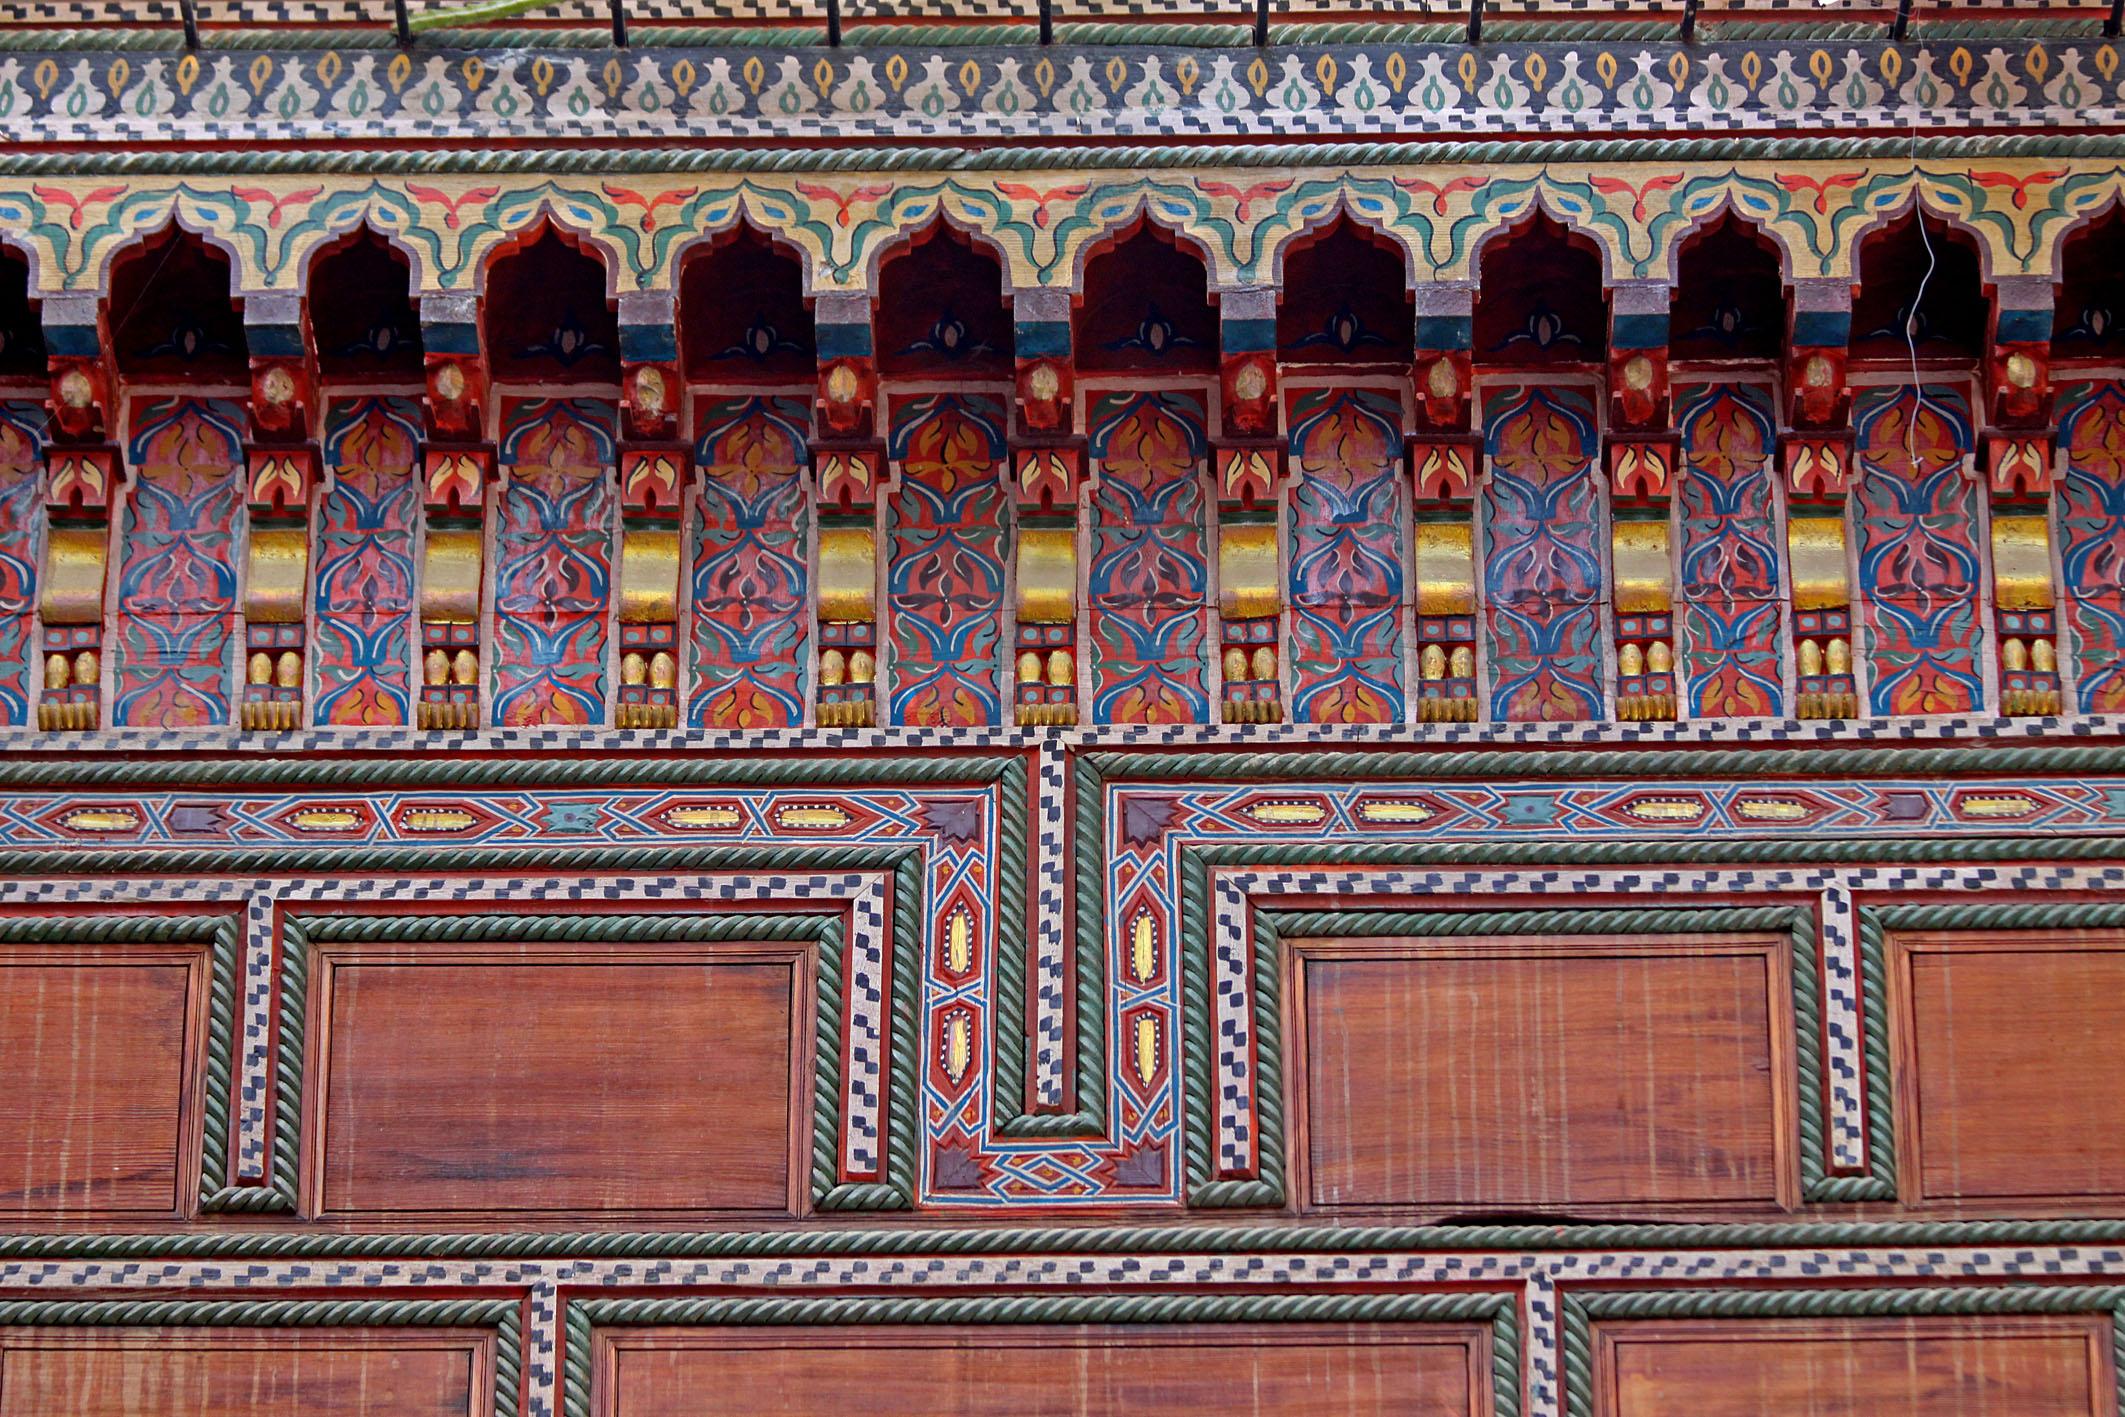 Pattern on Halka Roof Opening Above the Courtyard